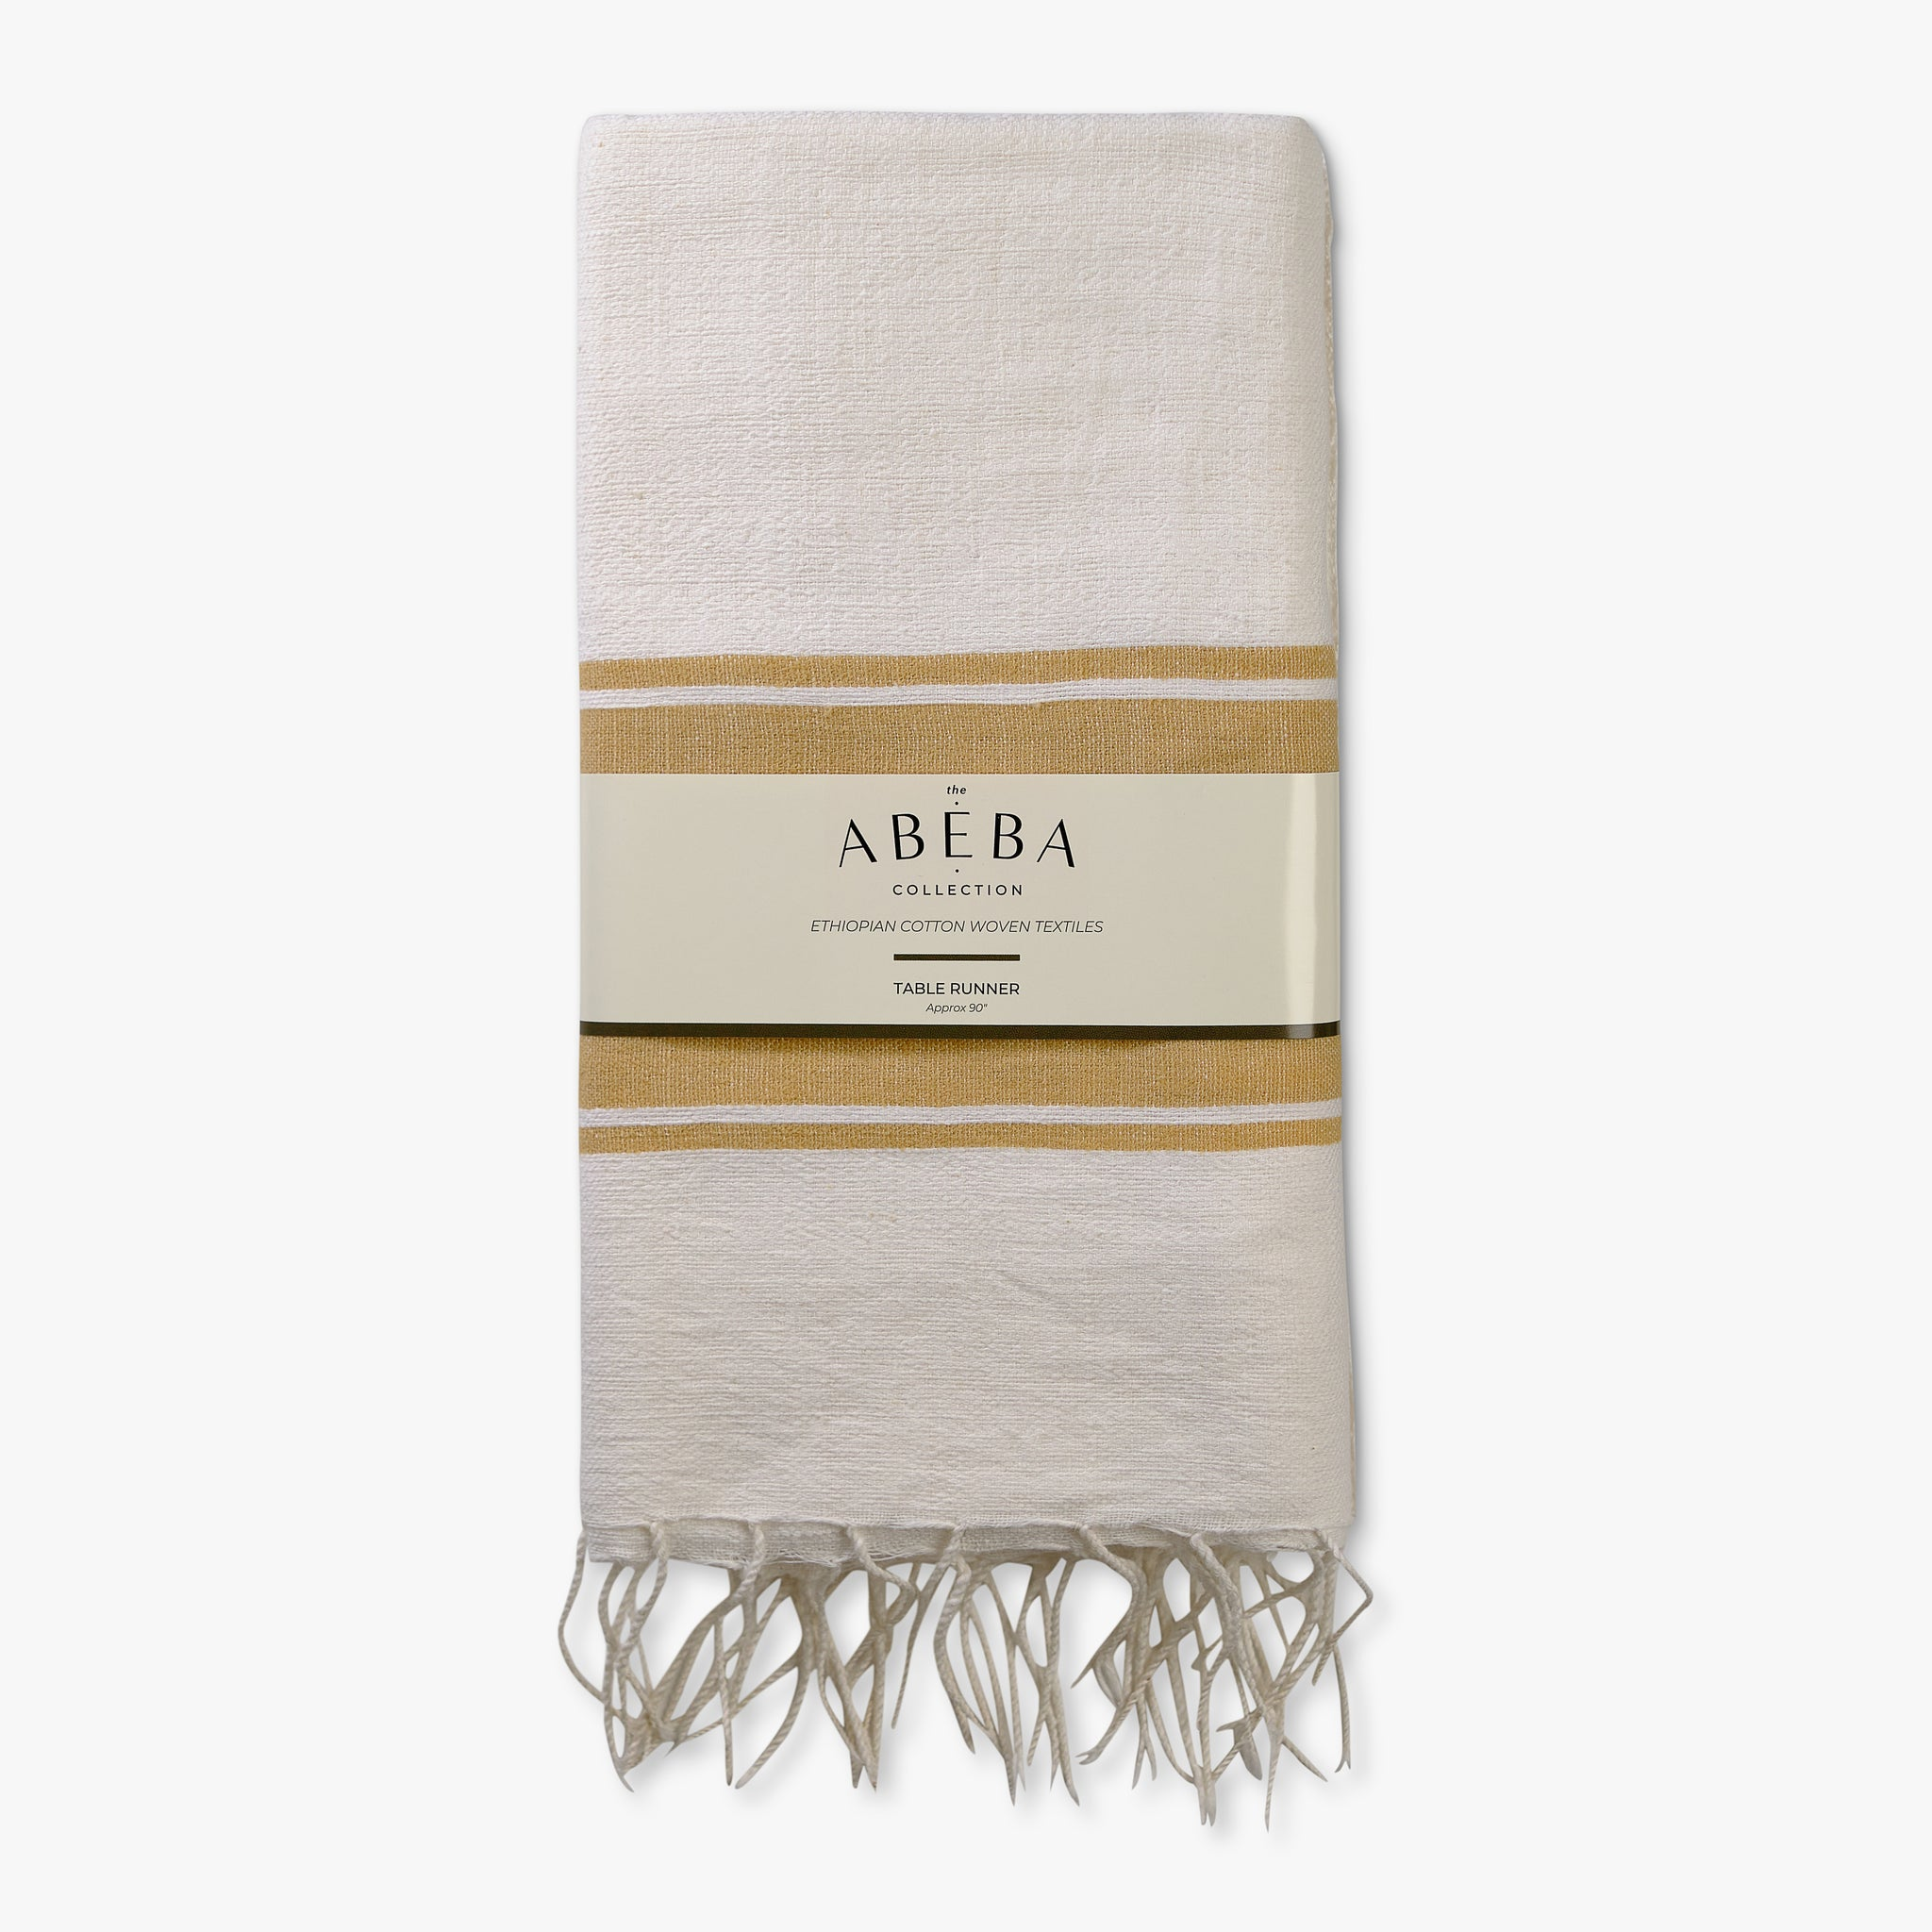 Handloomed Table Runner - Sand